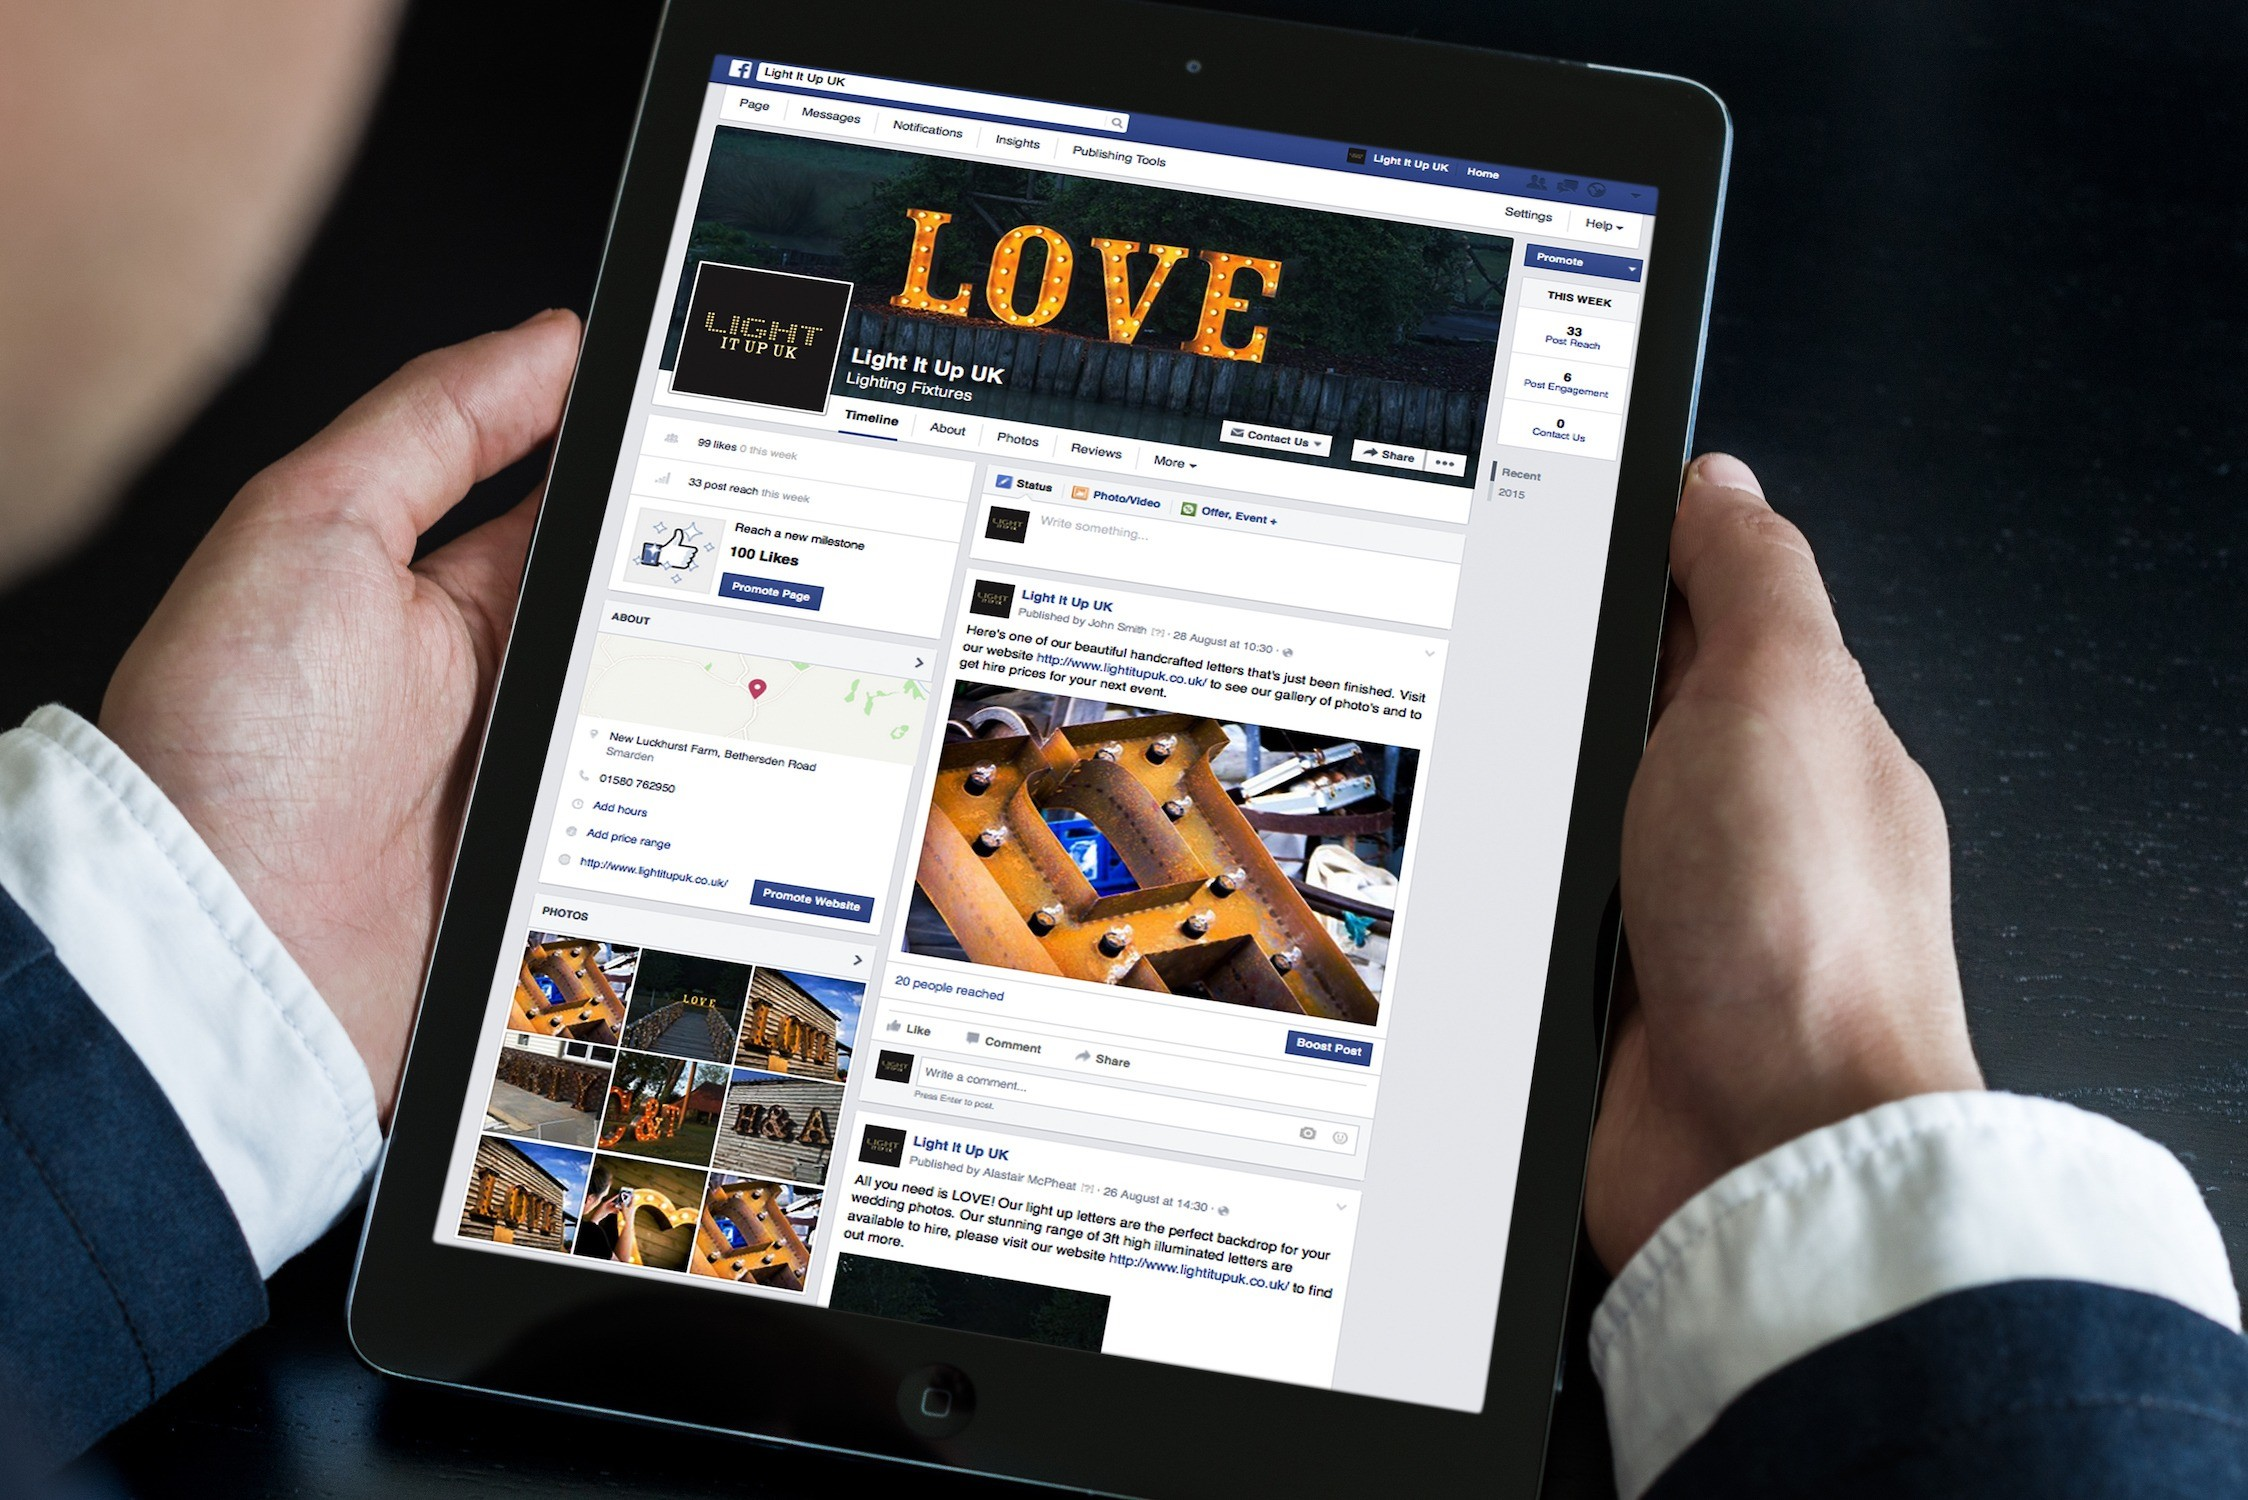 An image of someone using a tablet computer in portrait format with the Light It Up UK Twitter page on it.